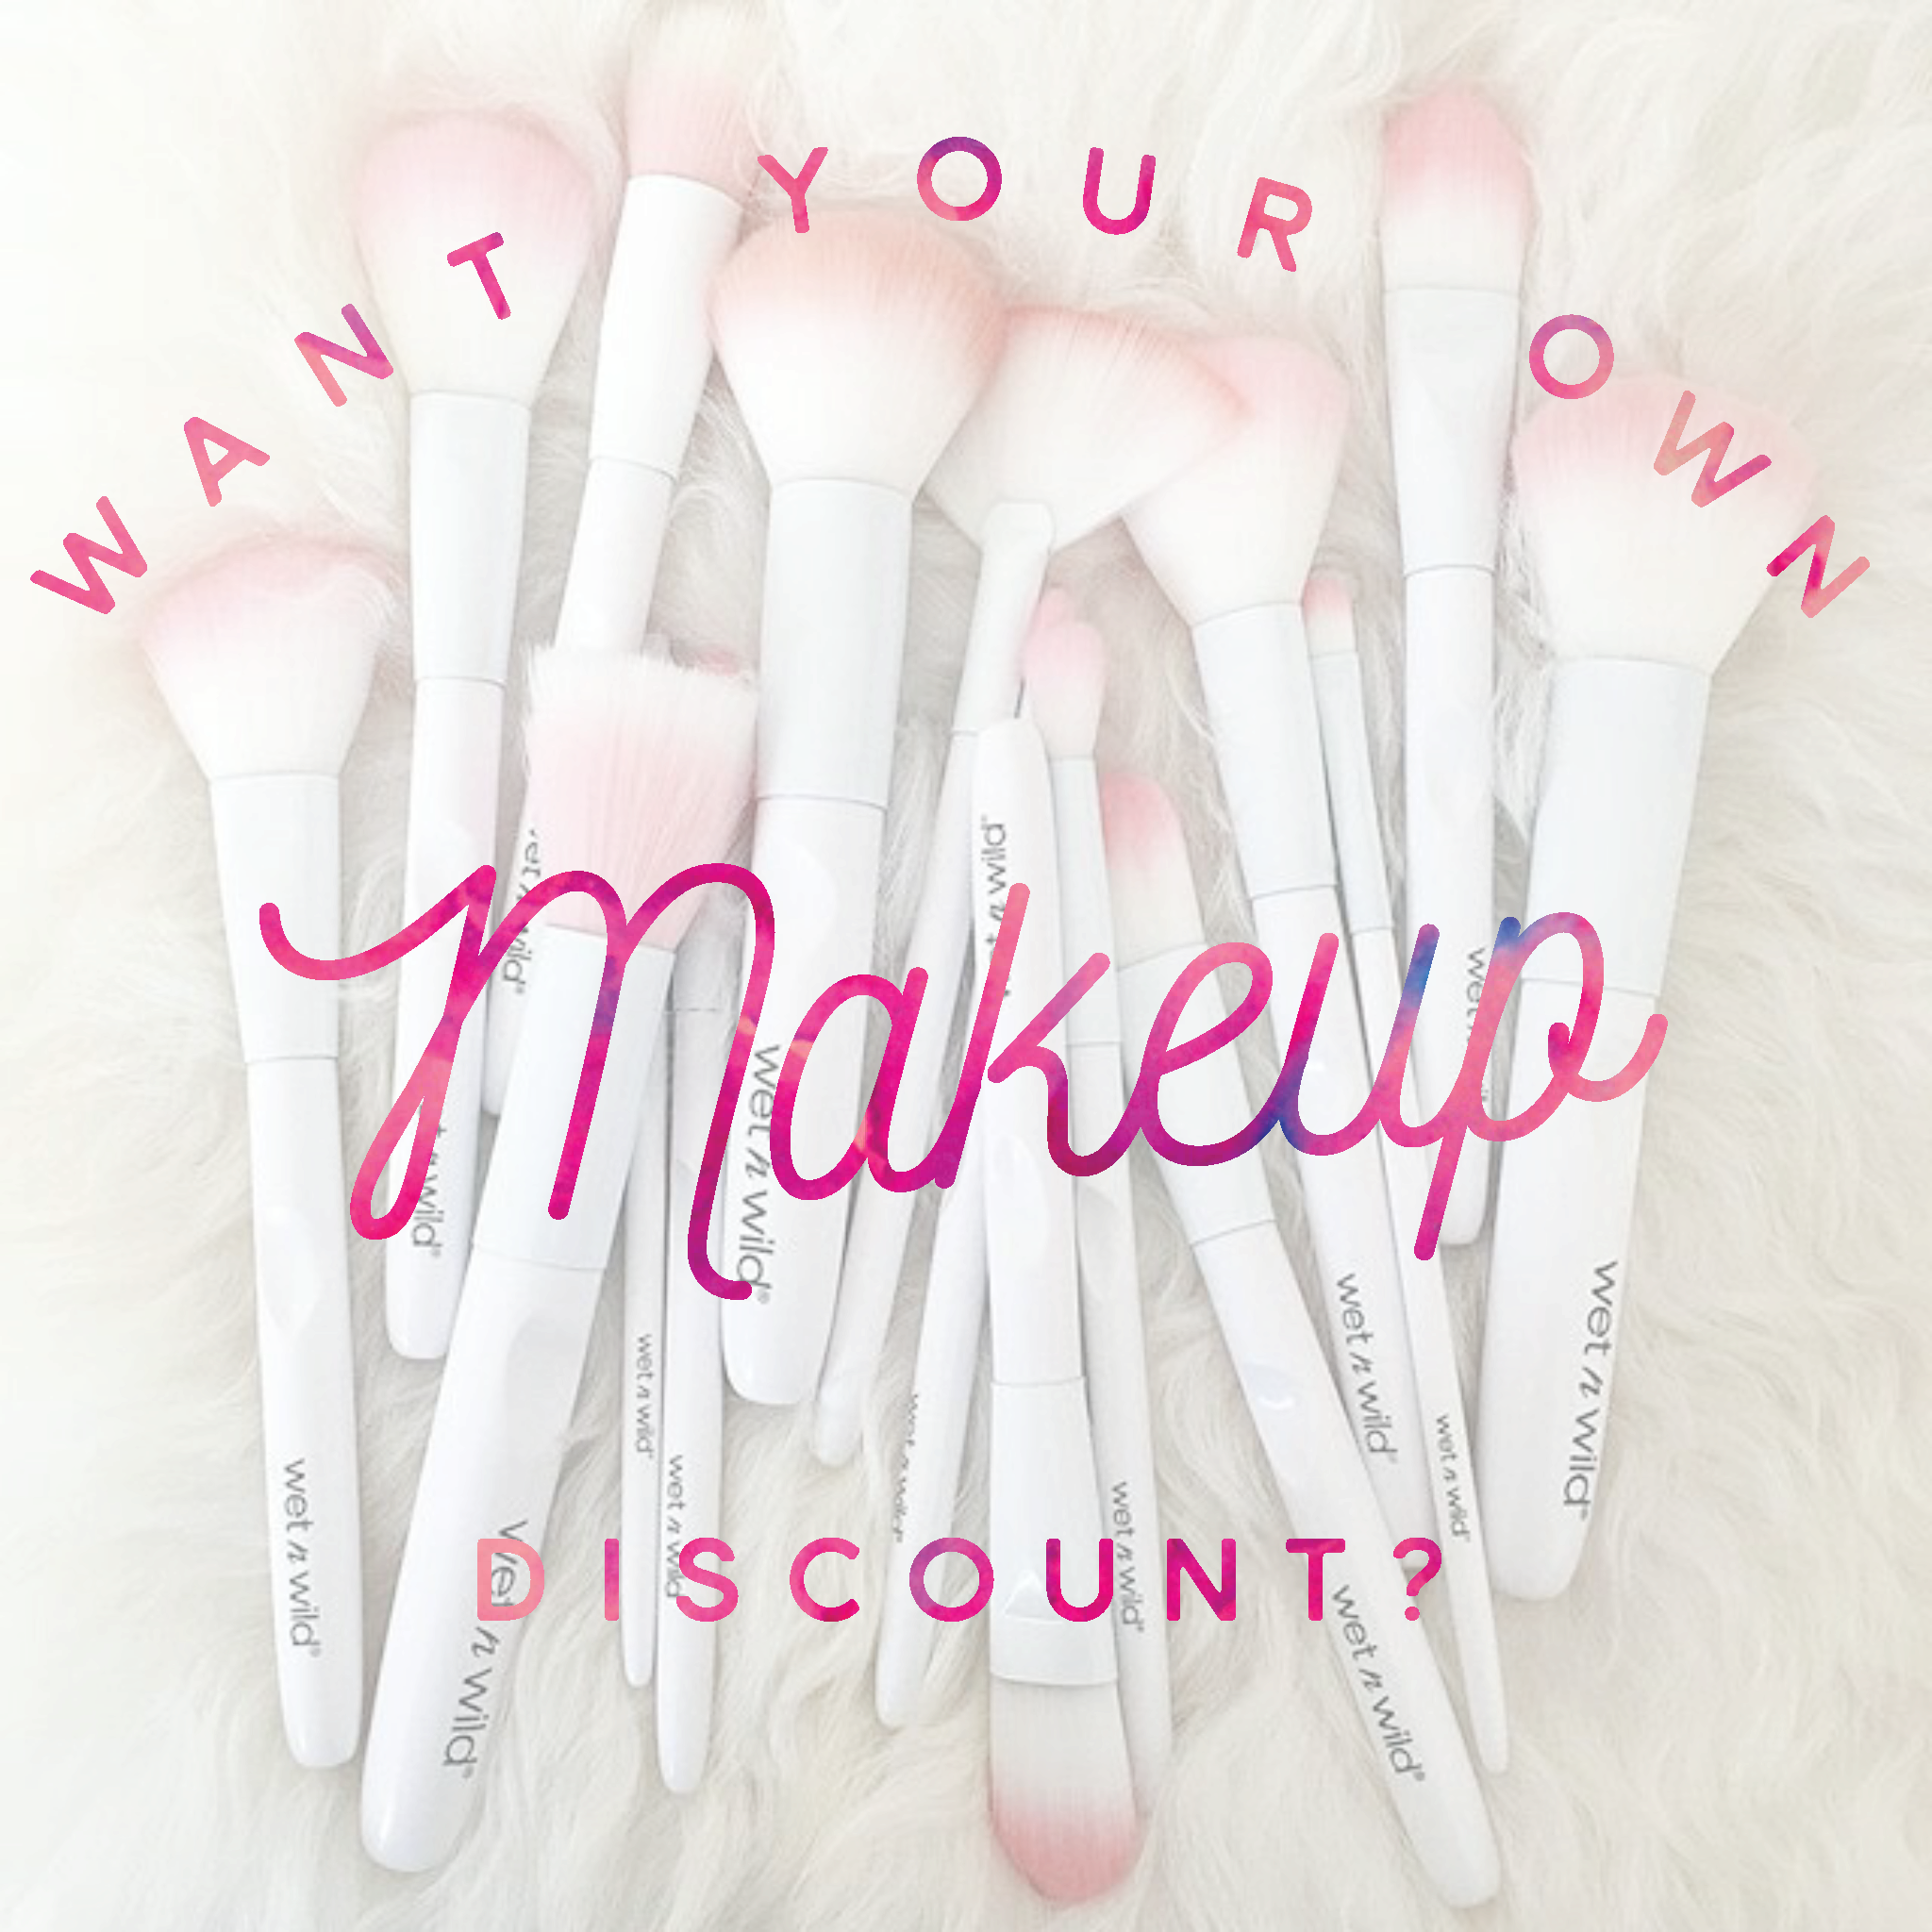 55 a year to get access to 20 to 50 off EVERY makeup and